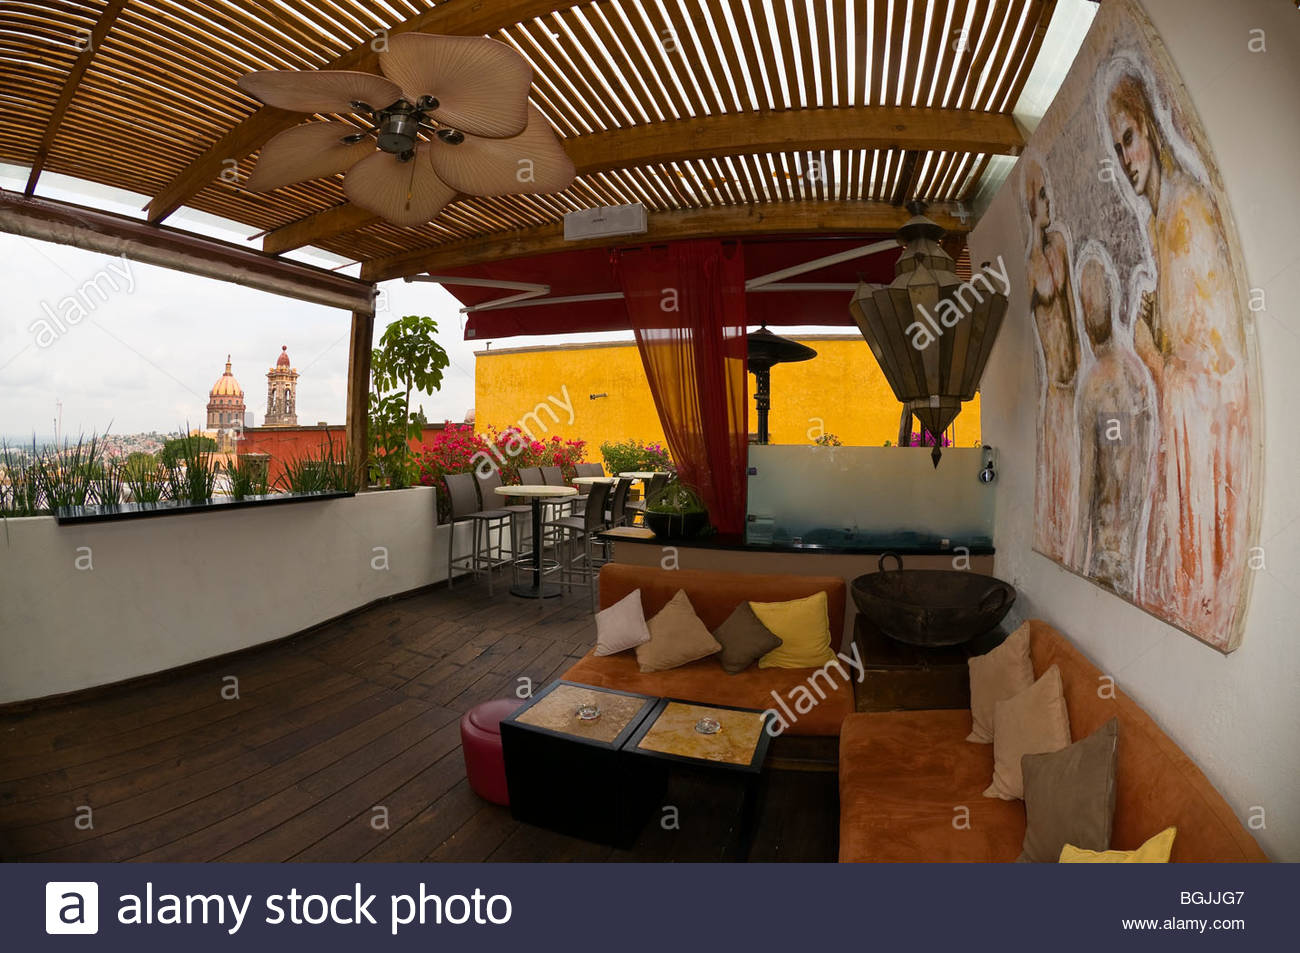 Rooftop bar of the Pueblo VIeja Restaurant, San Miguel de Allende, Mexico - Stock Image